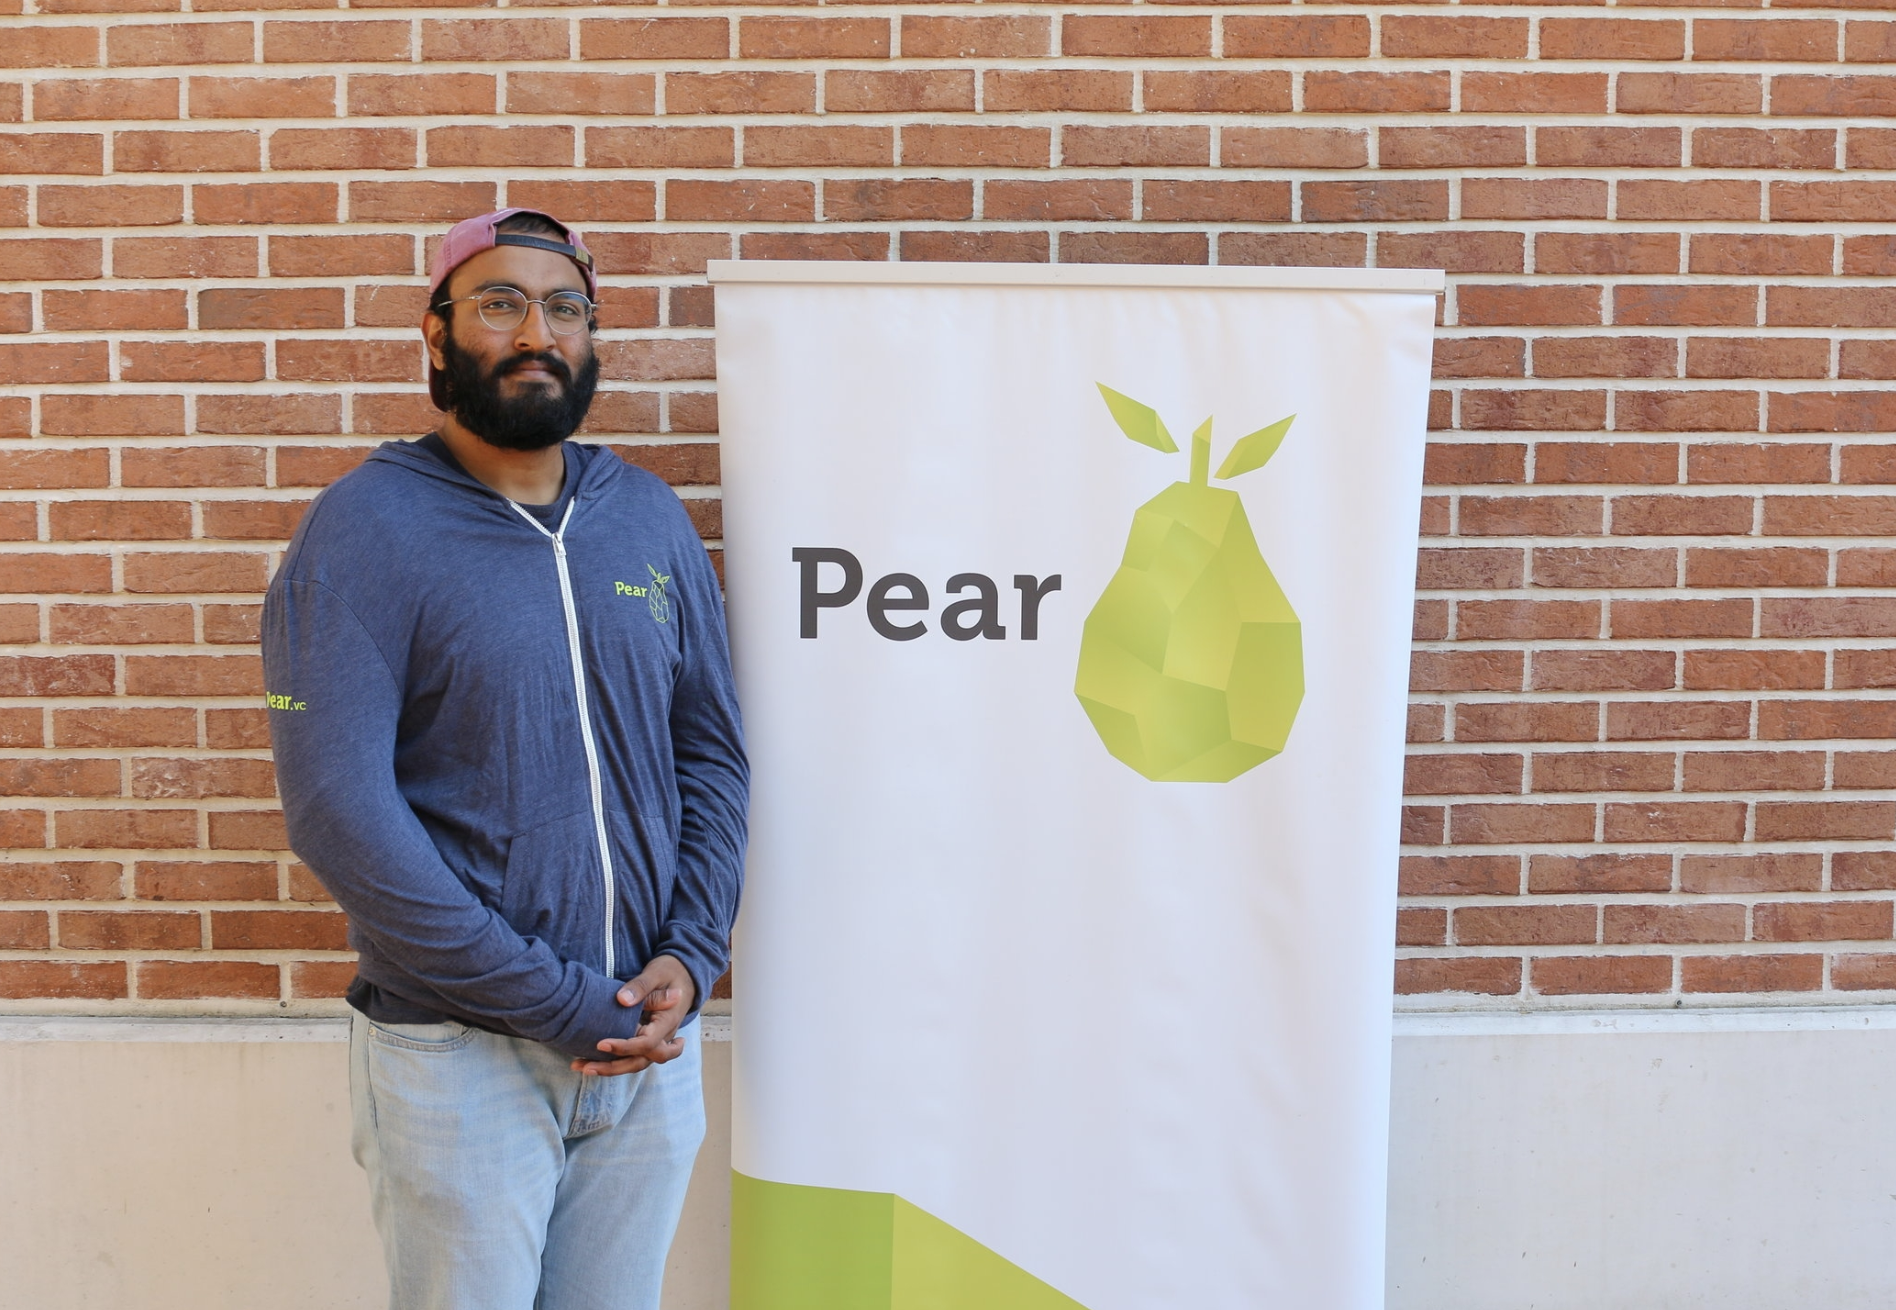 These 14 startups — endorsed by the seed-stage investment firm Pear — just hit the fundraising trail Screenshot 2018 10 28 15